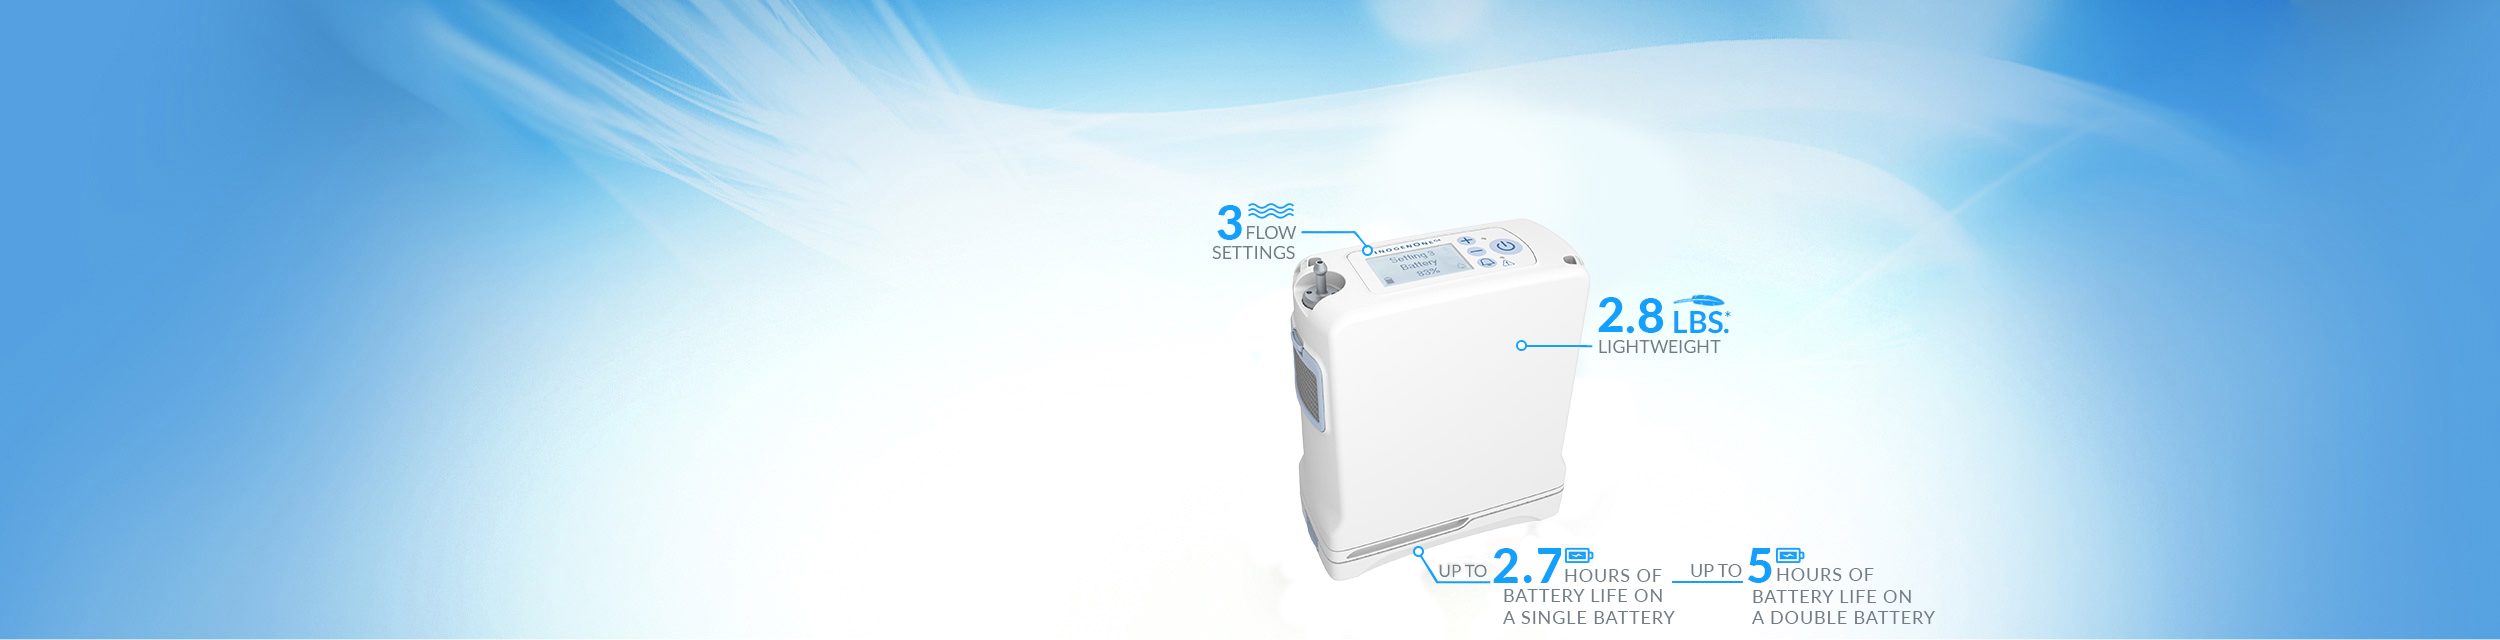 Inogen One G4 - 3 flow settings, 2.8 LBS, up to 2.7 hours of battery life on a single battery and up to 5 hours of battery life on a double battery